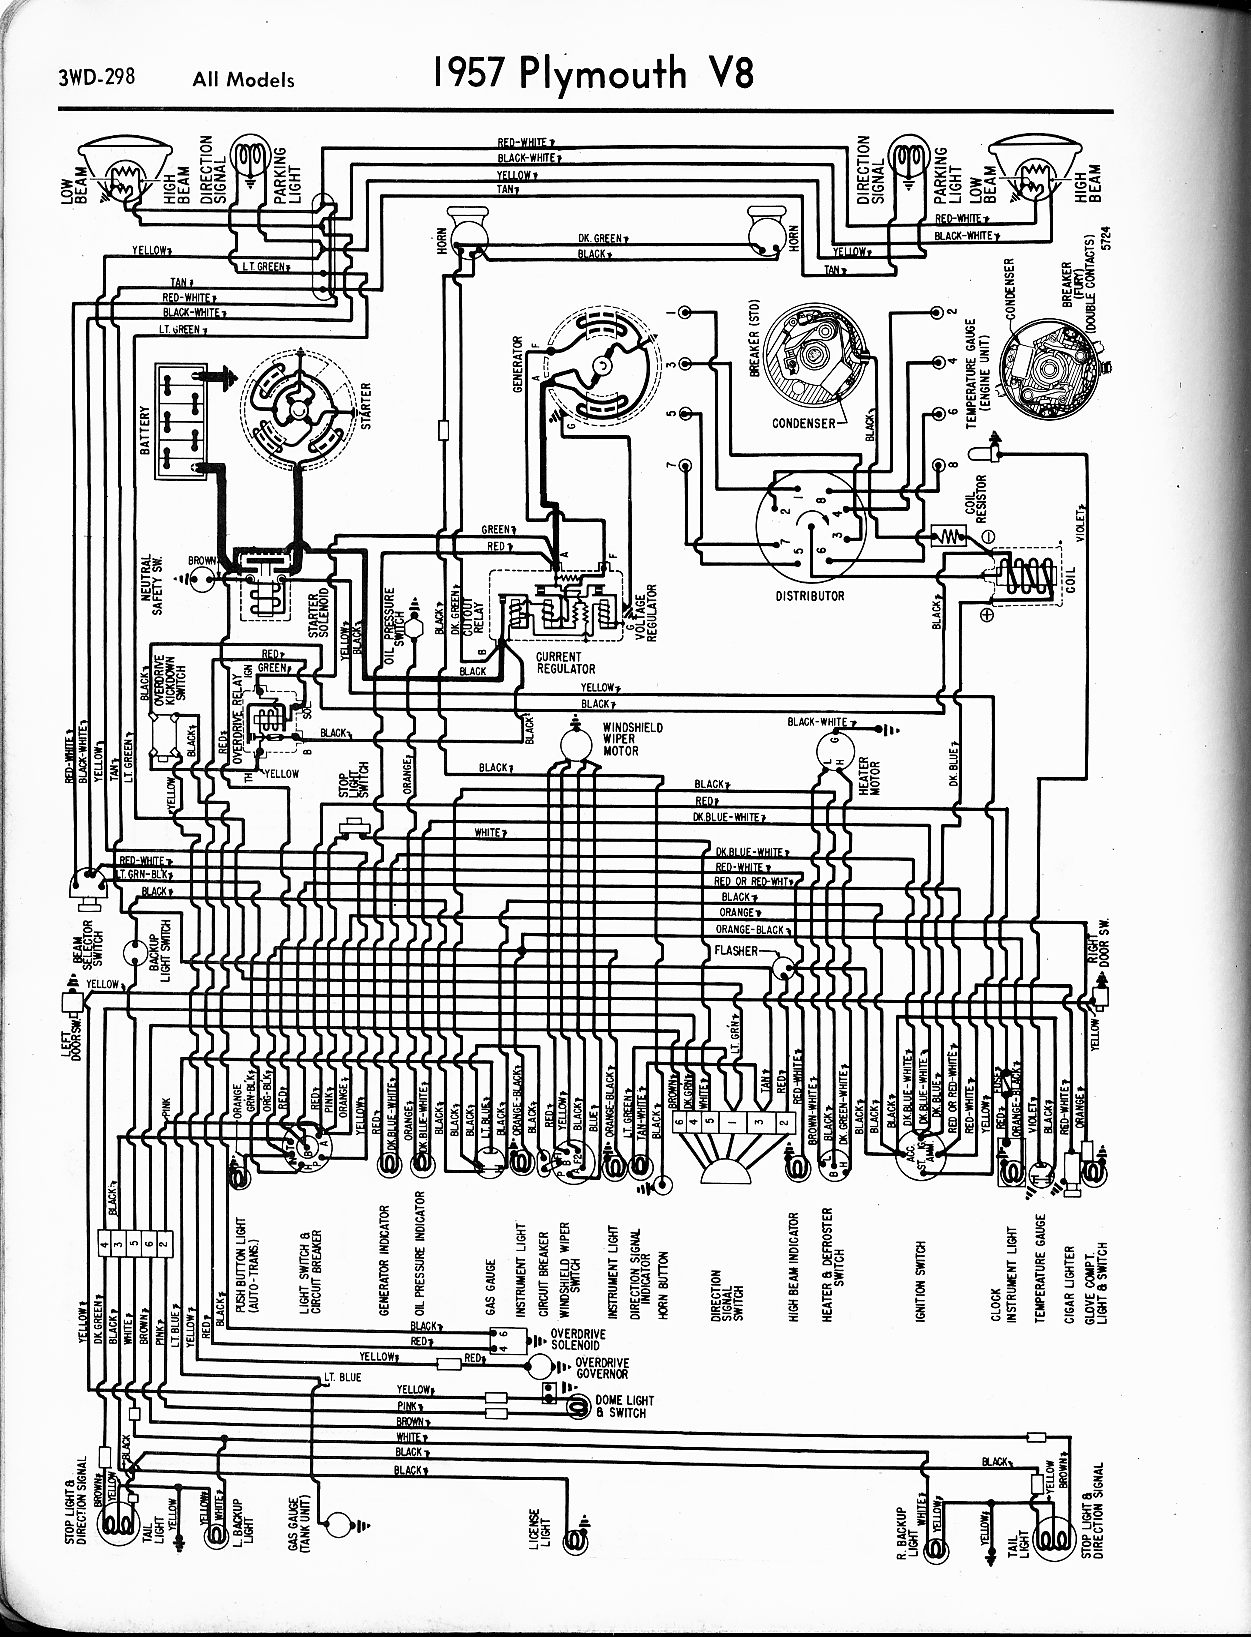 1956 1965 plymouth wiring the old car manual project1958 Plymouth Wiring Diagram #1